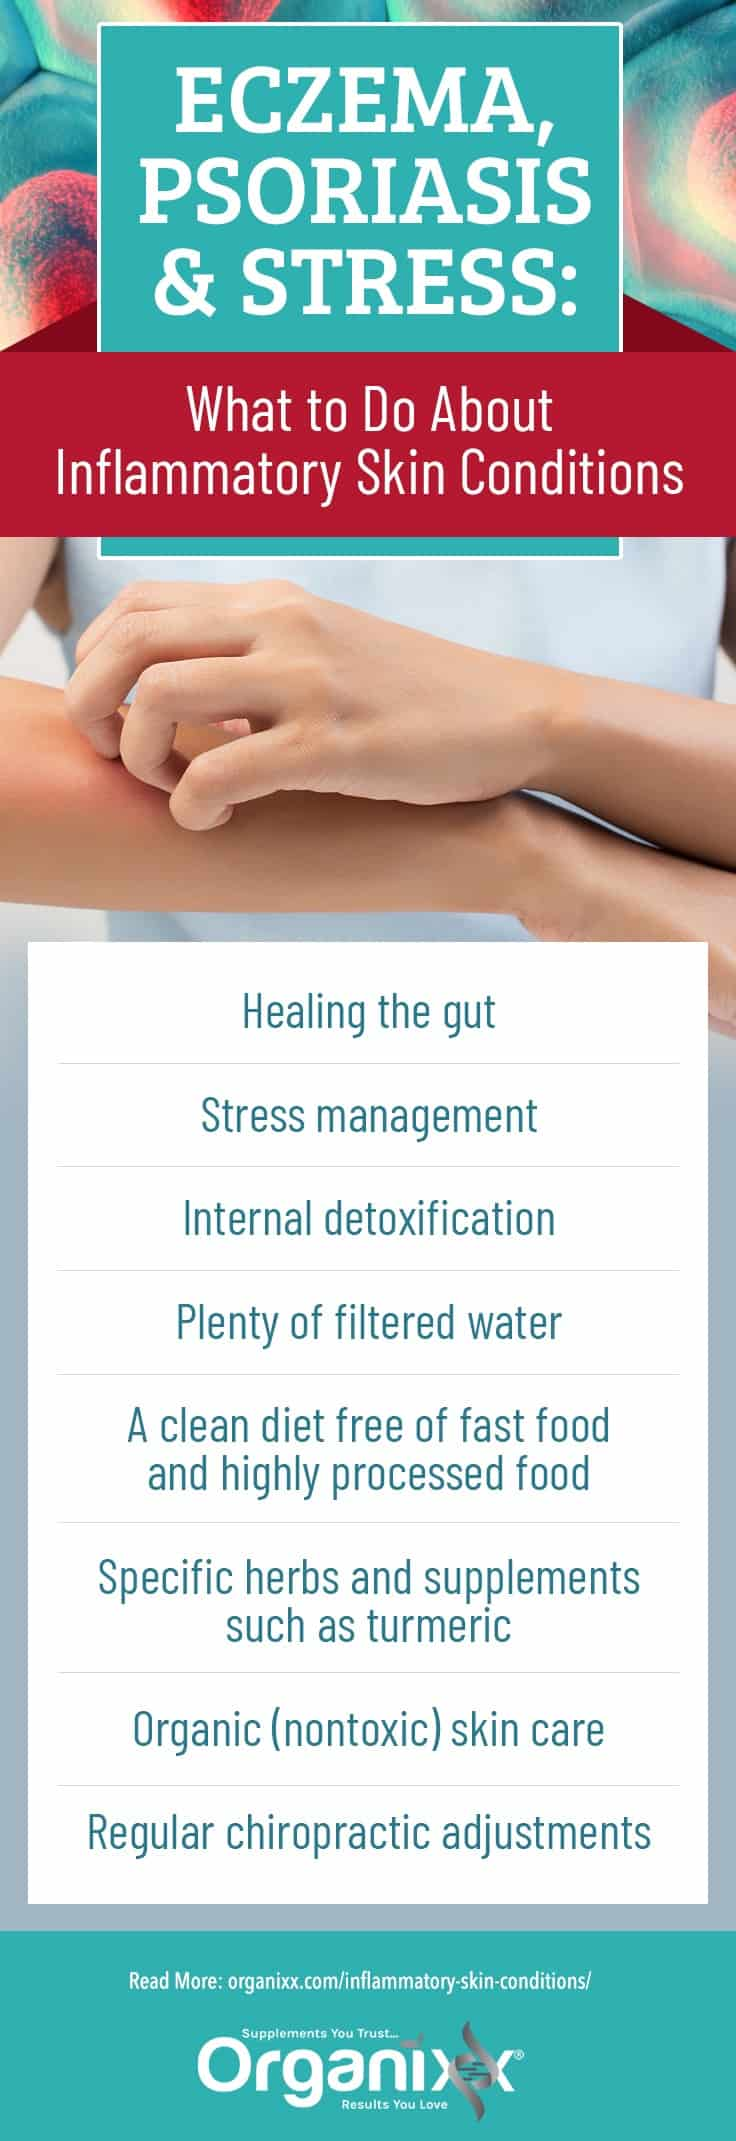 infographic with help tips for managing inflammatory skin conditions